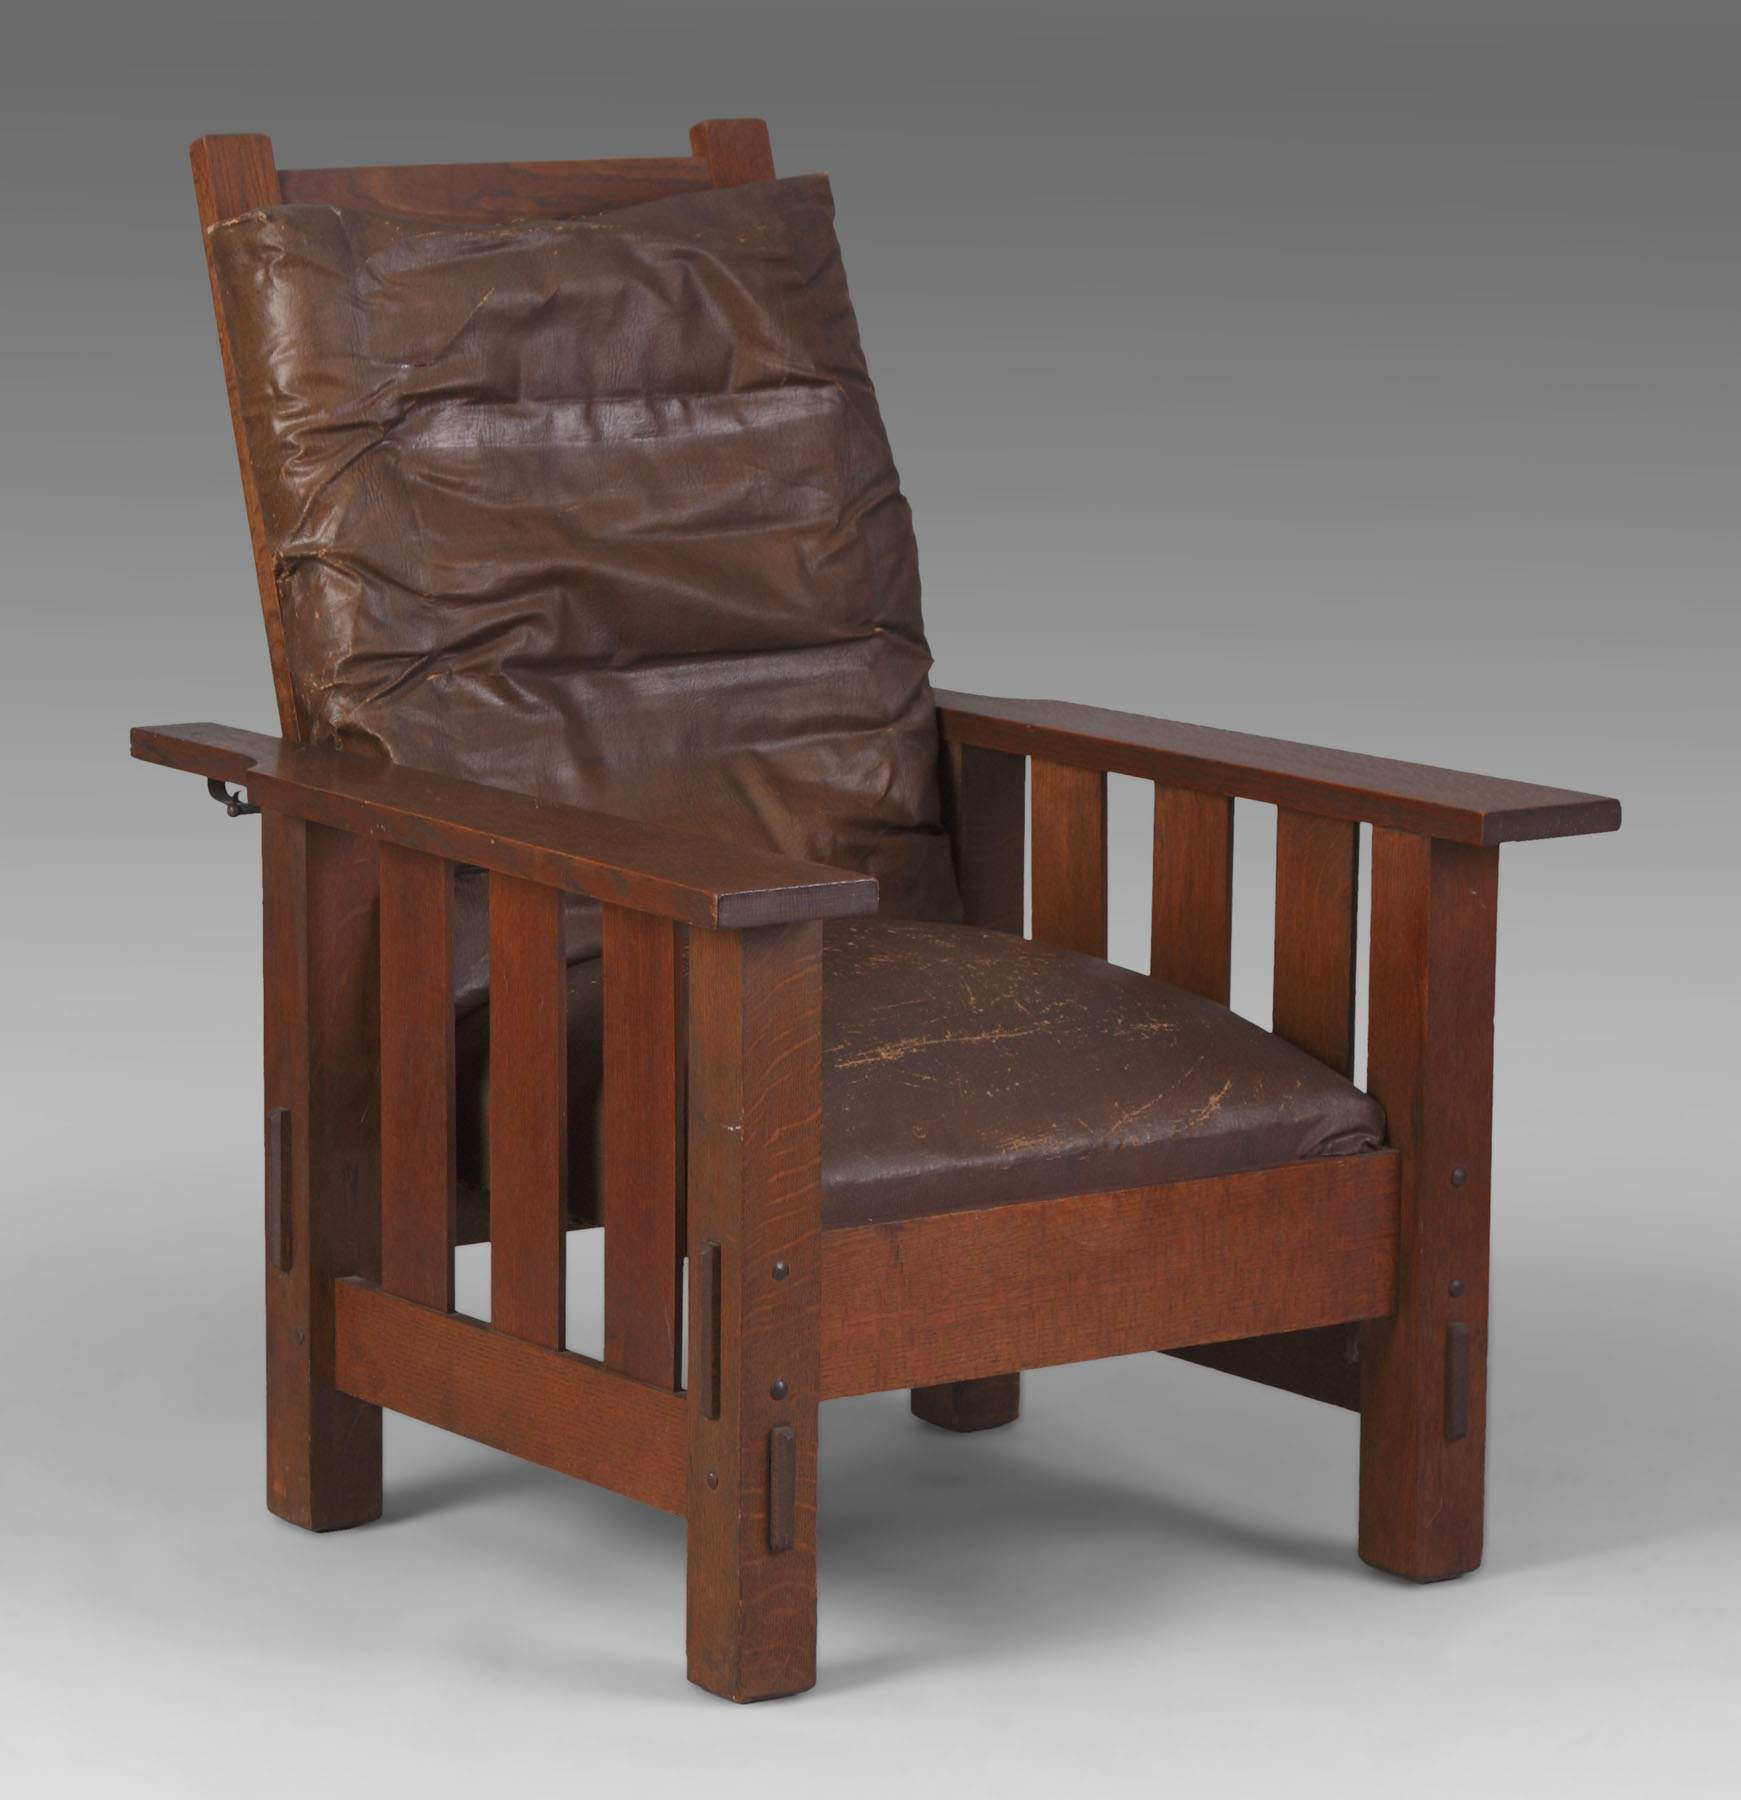 Arts and crafts furniture chair - Arts Crafts Morris Chair